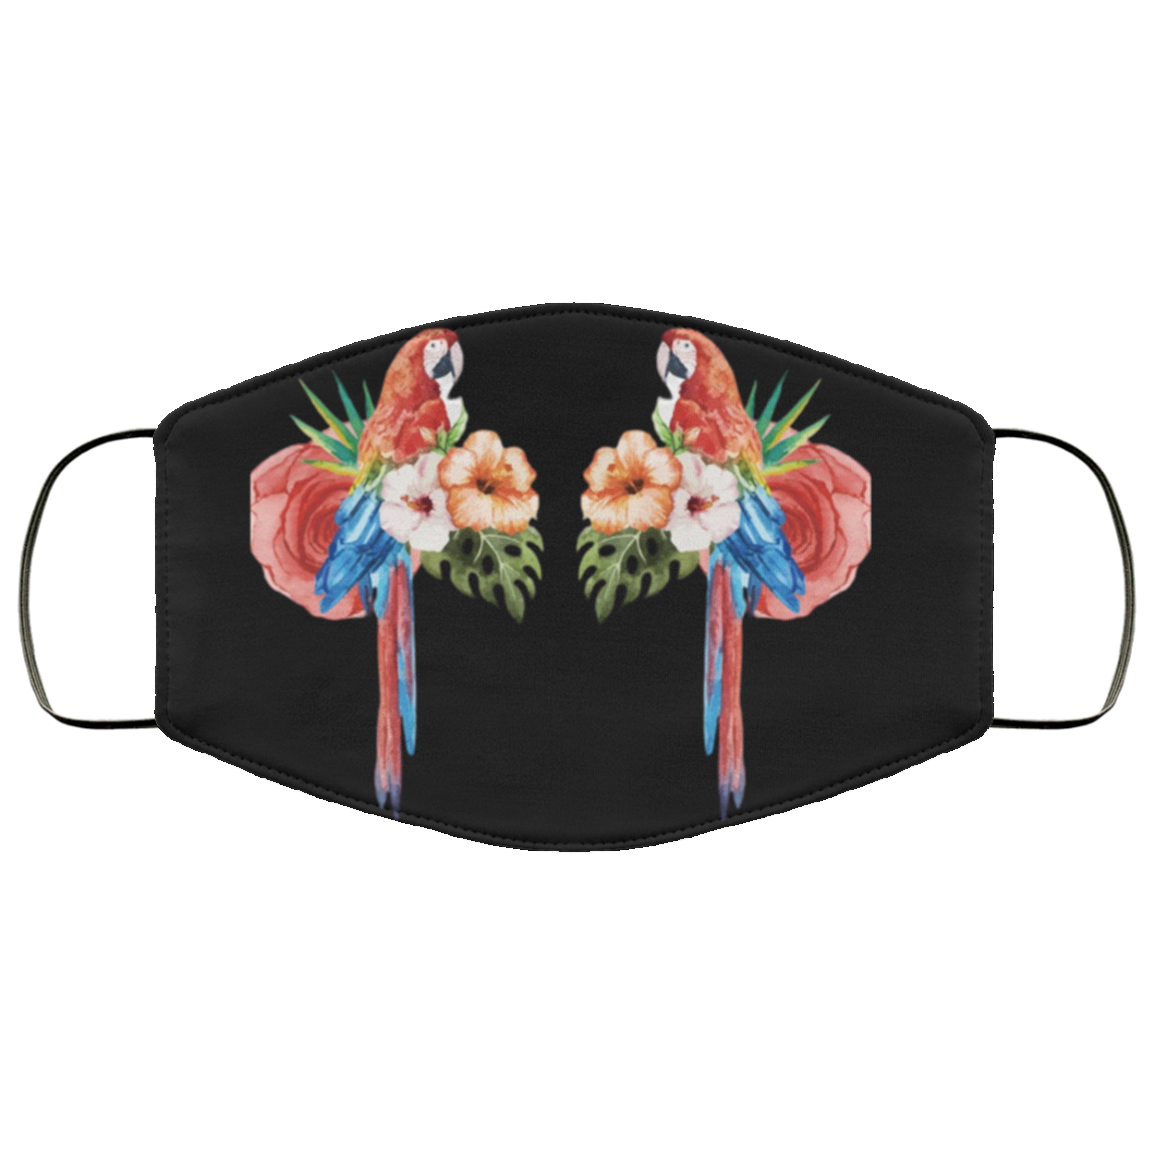 Pair of Parrots Face Mask